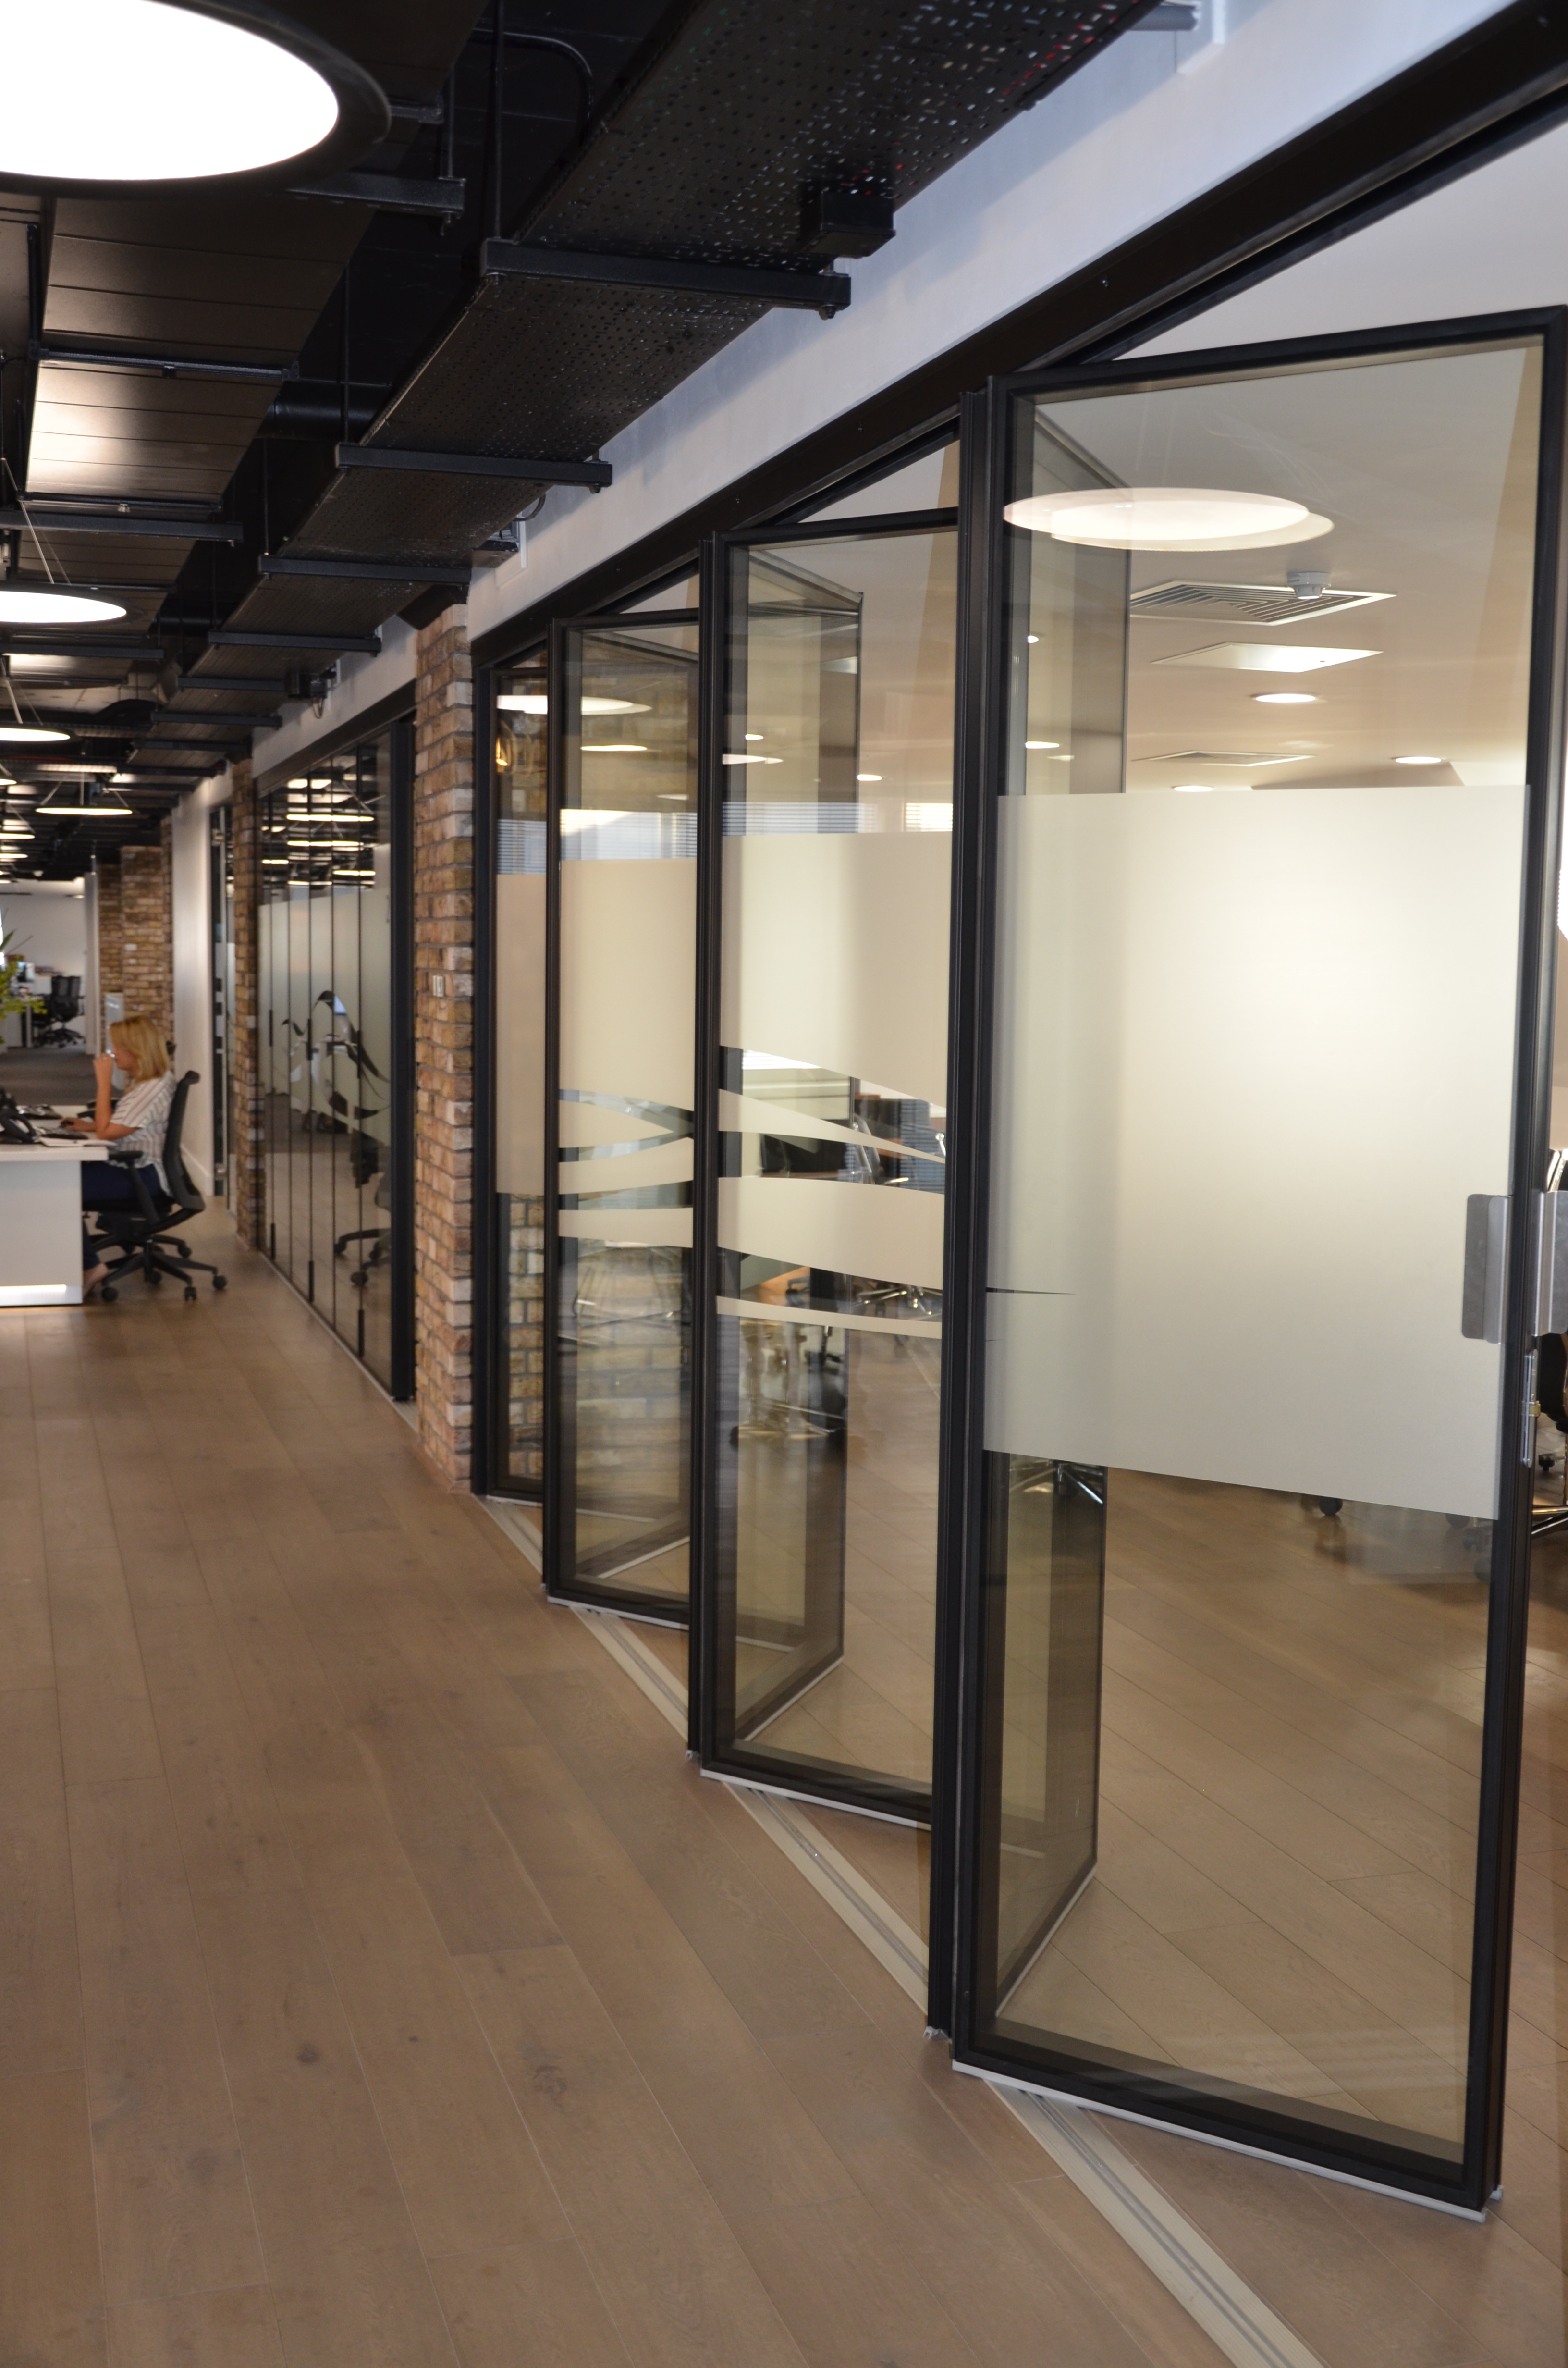 London wall launches new acoustic folding glass wall system for Folding glass wall